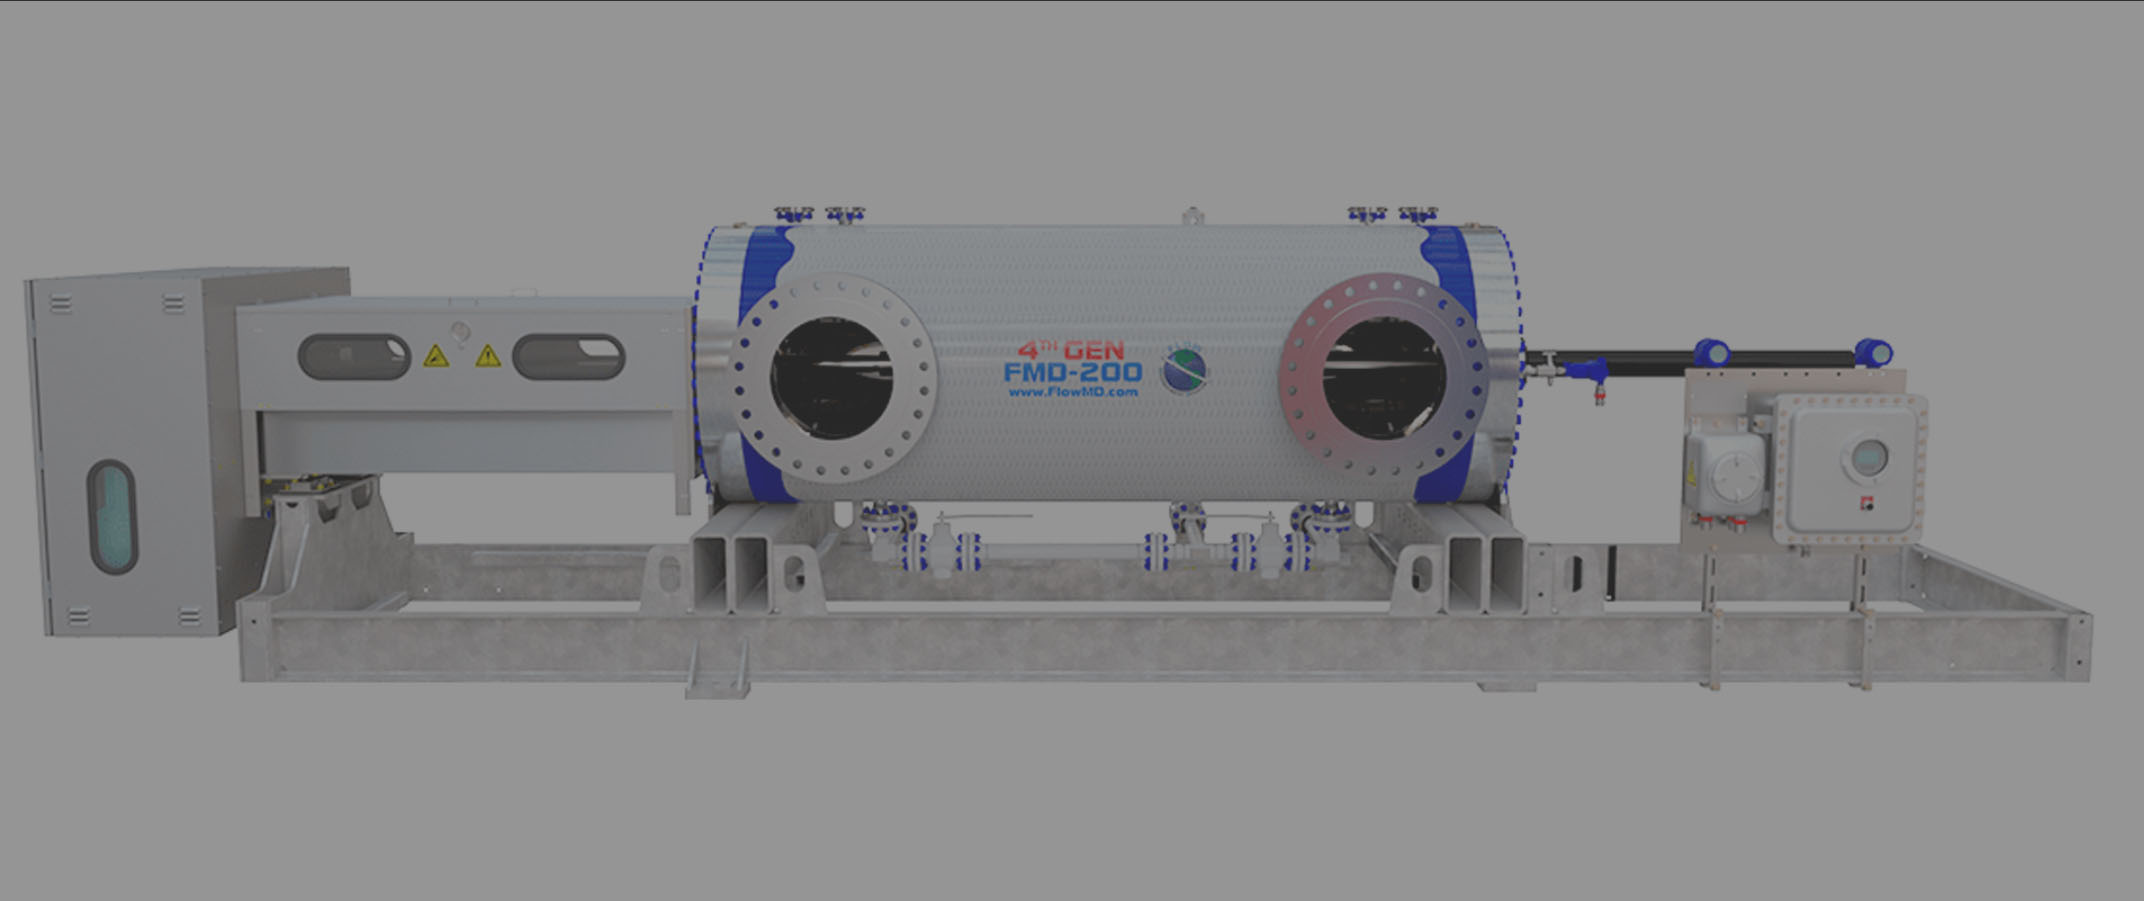 S&S Technical Becomes Authorized Fabrication Partner for Flow MD.